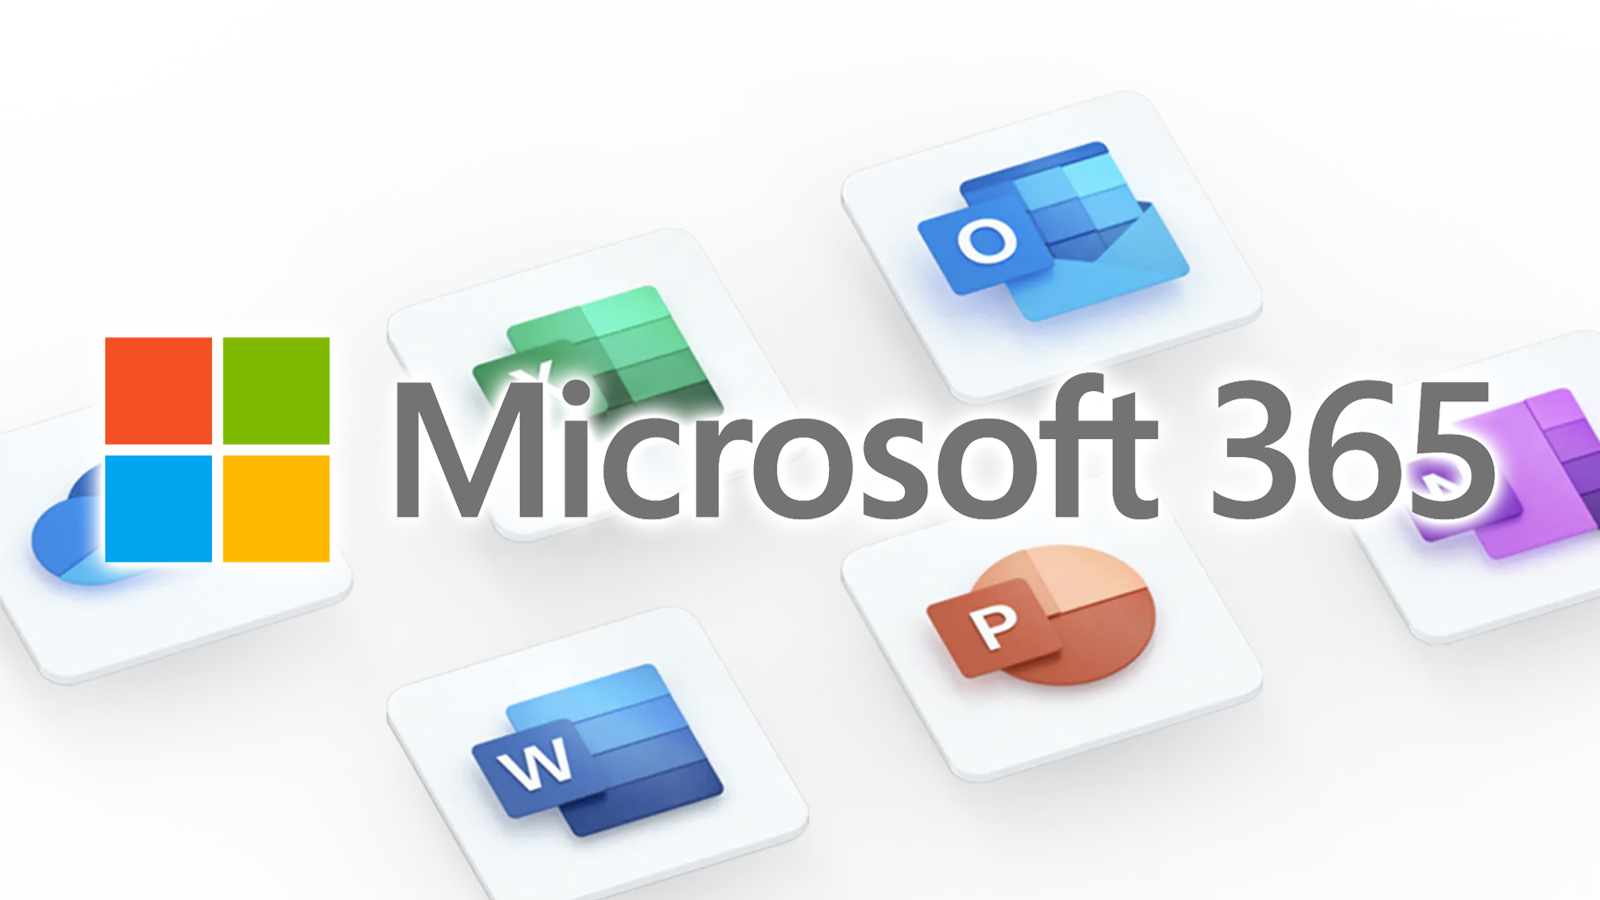 The Microsoft 365 logo over a white background.